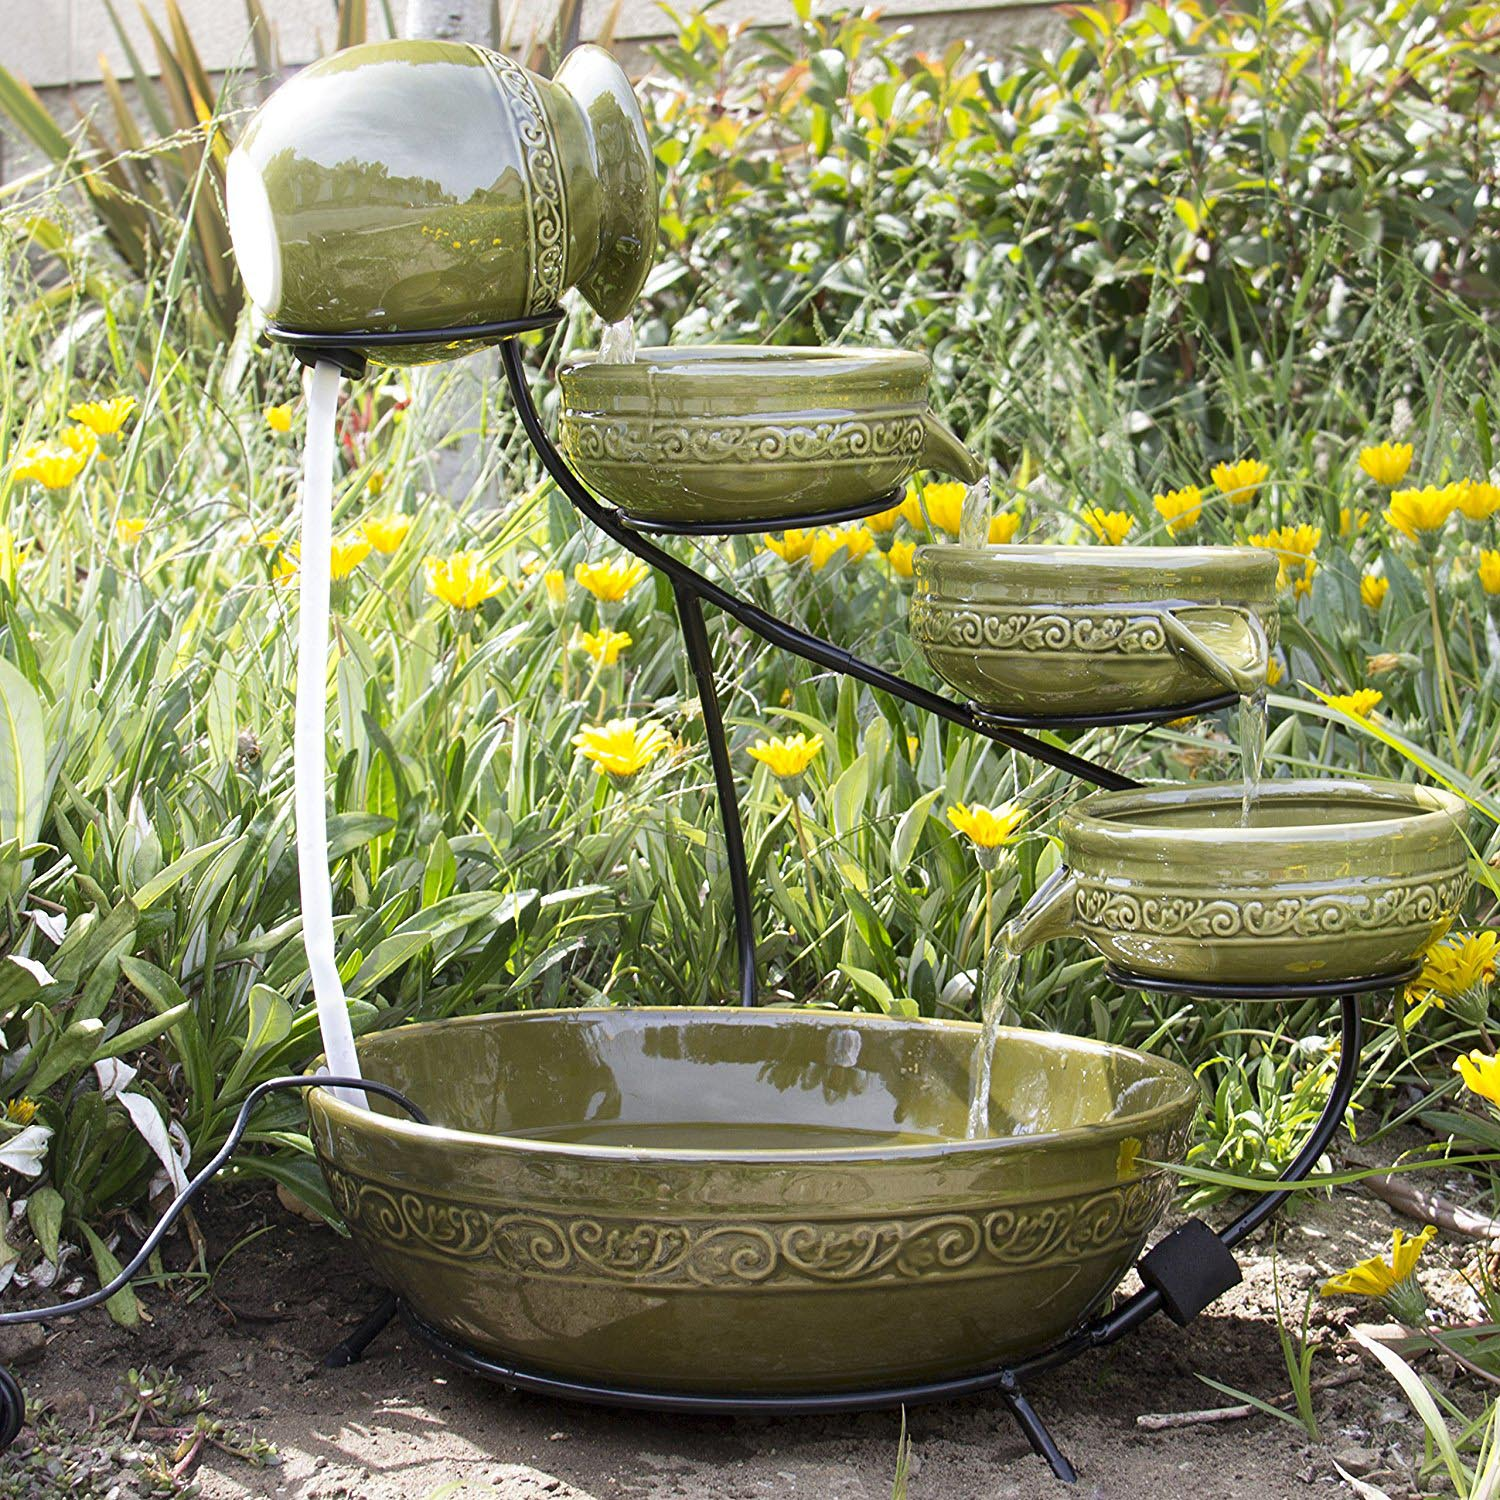 Smart Solar Kensington Gardens 2 Tier Solar Bird Bath Fountain